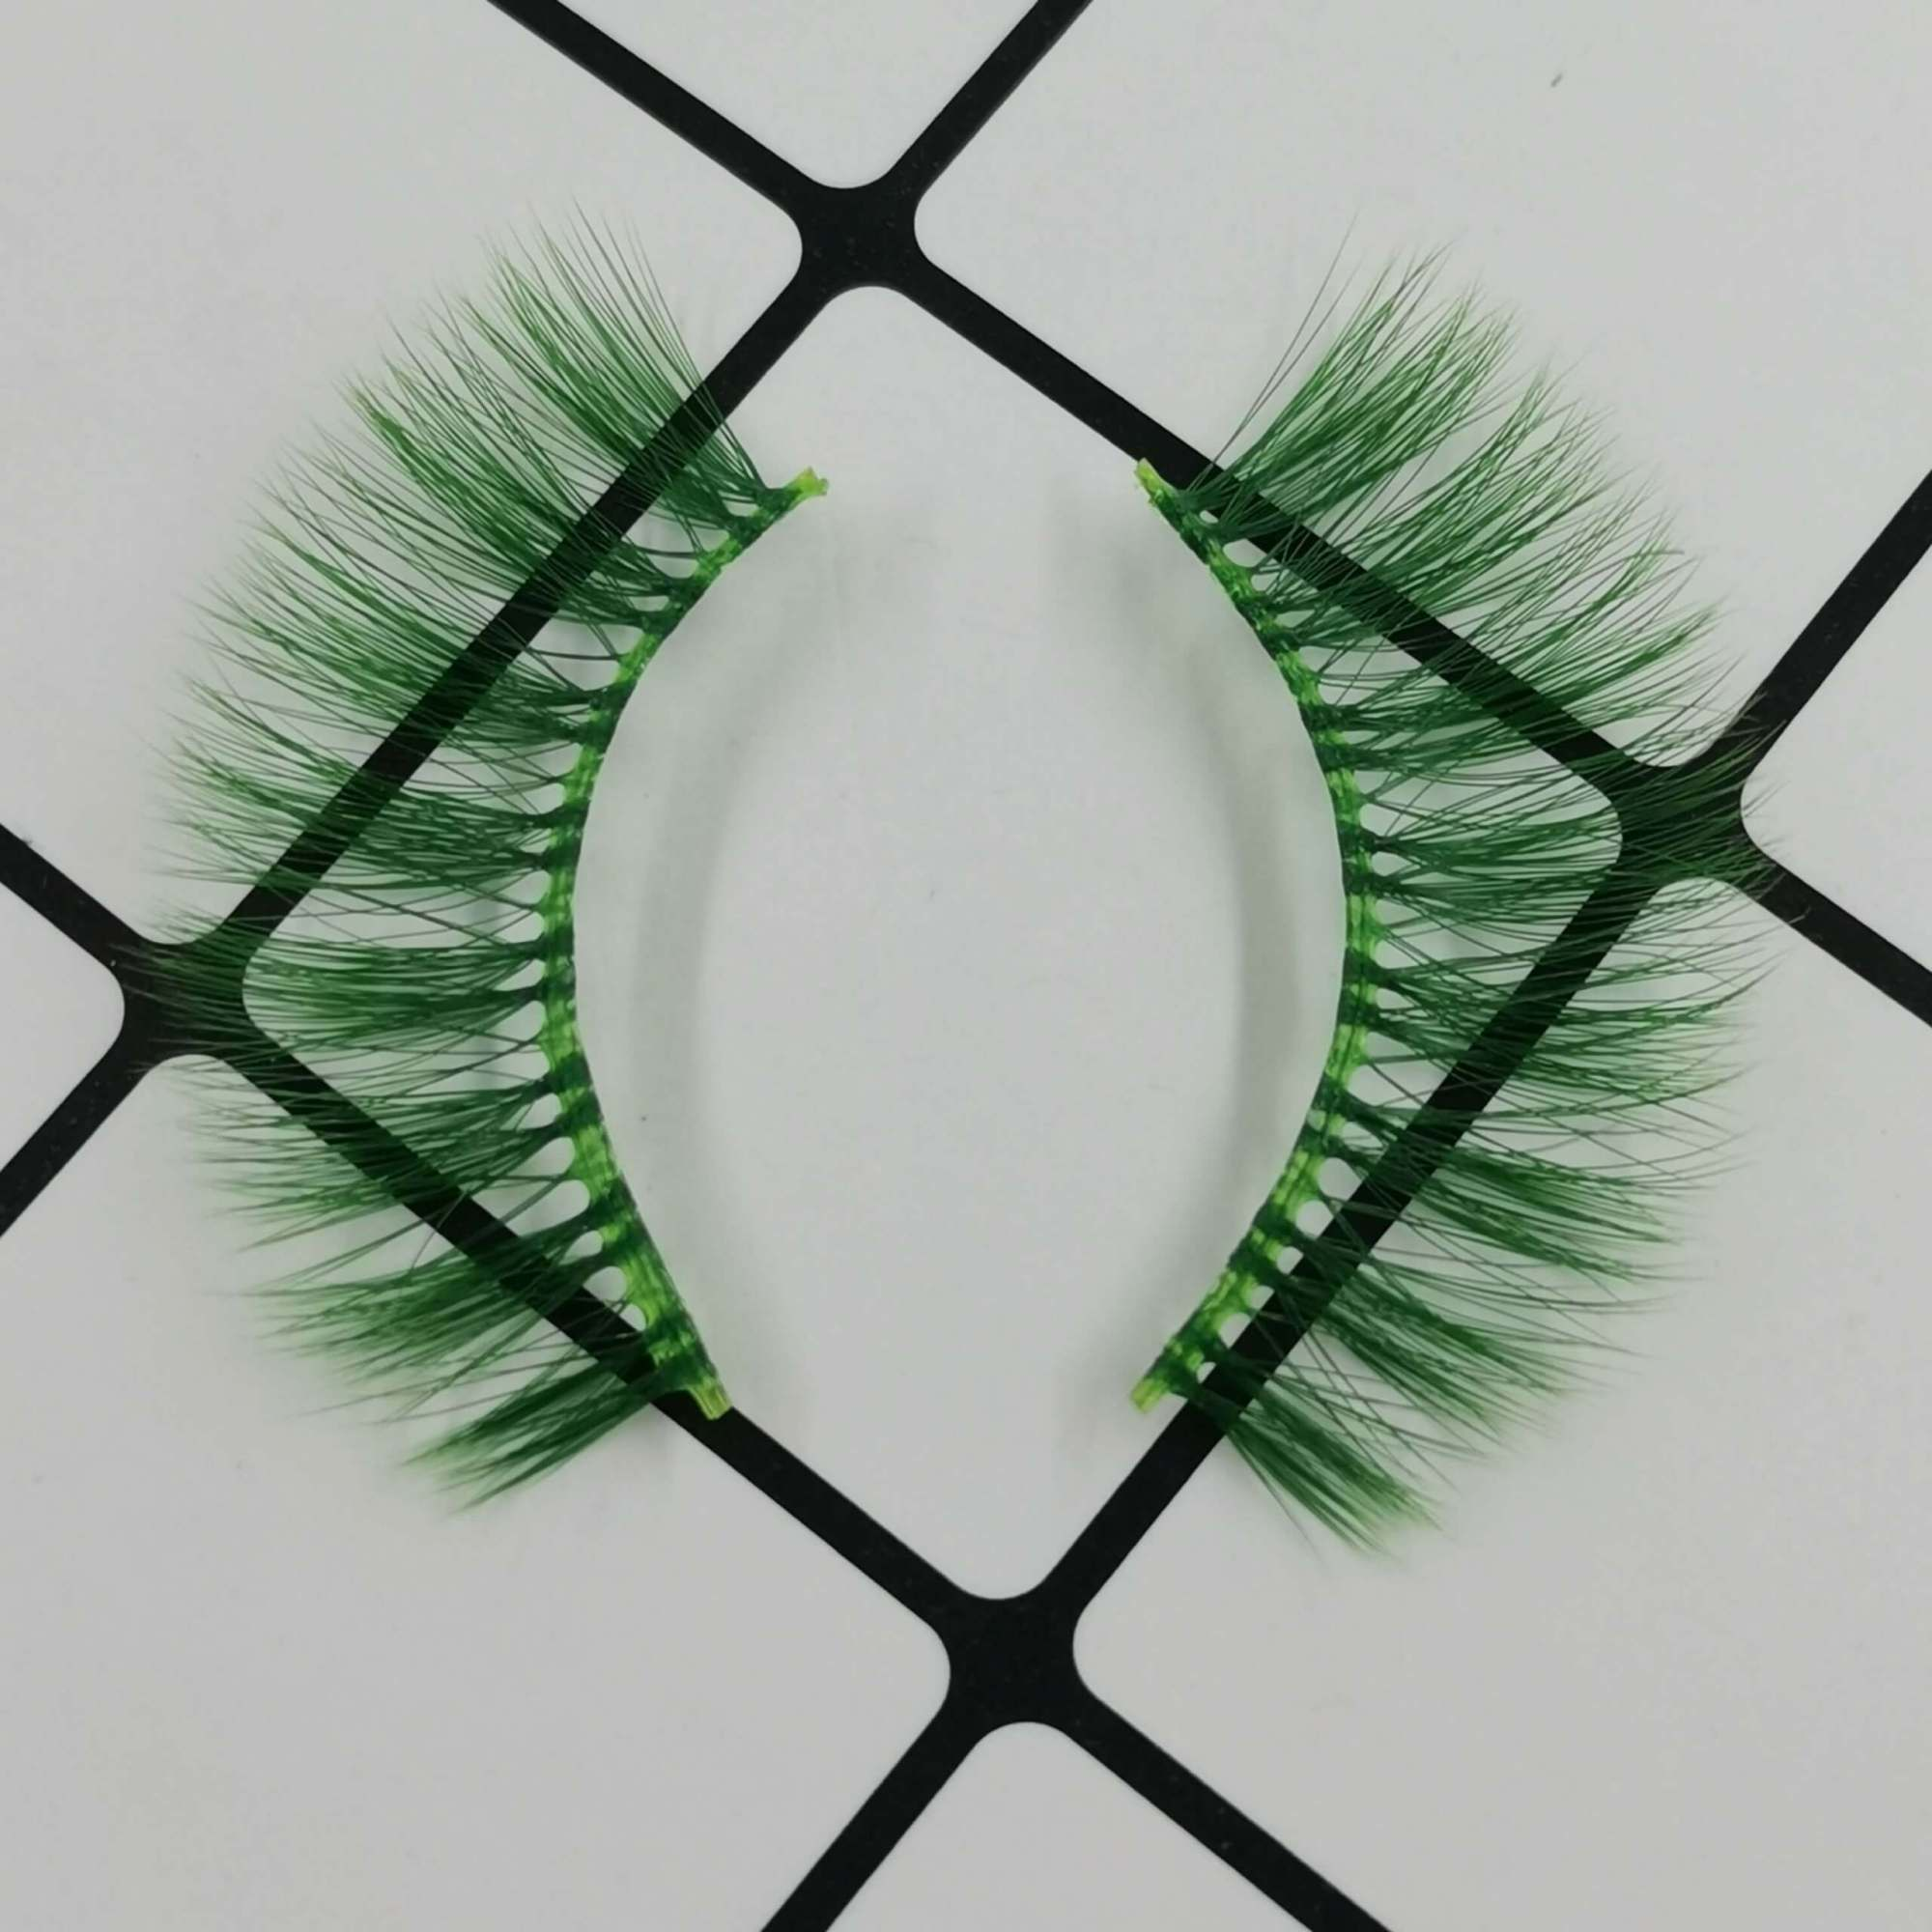 A pair of colored eyelashes for your eye shape and its color is green. Trust me, ProluxuryLashes brand is the best eyelash supplier